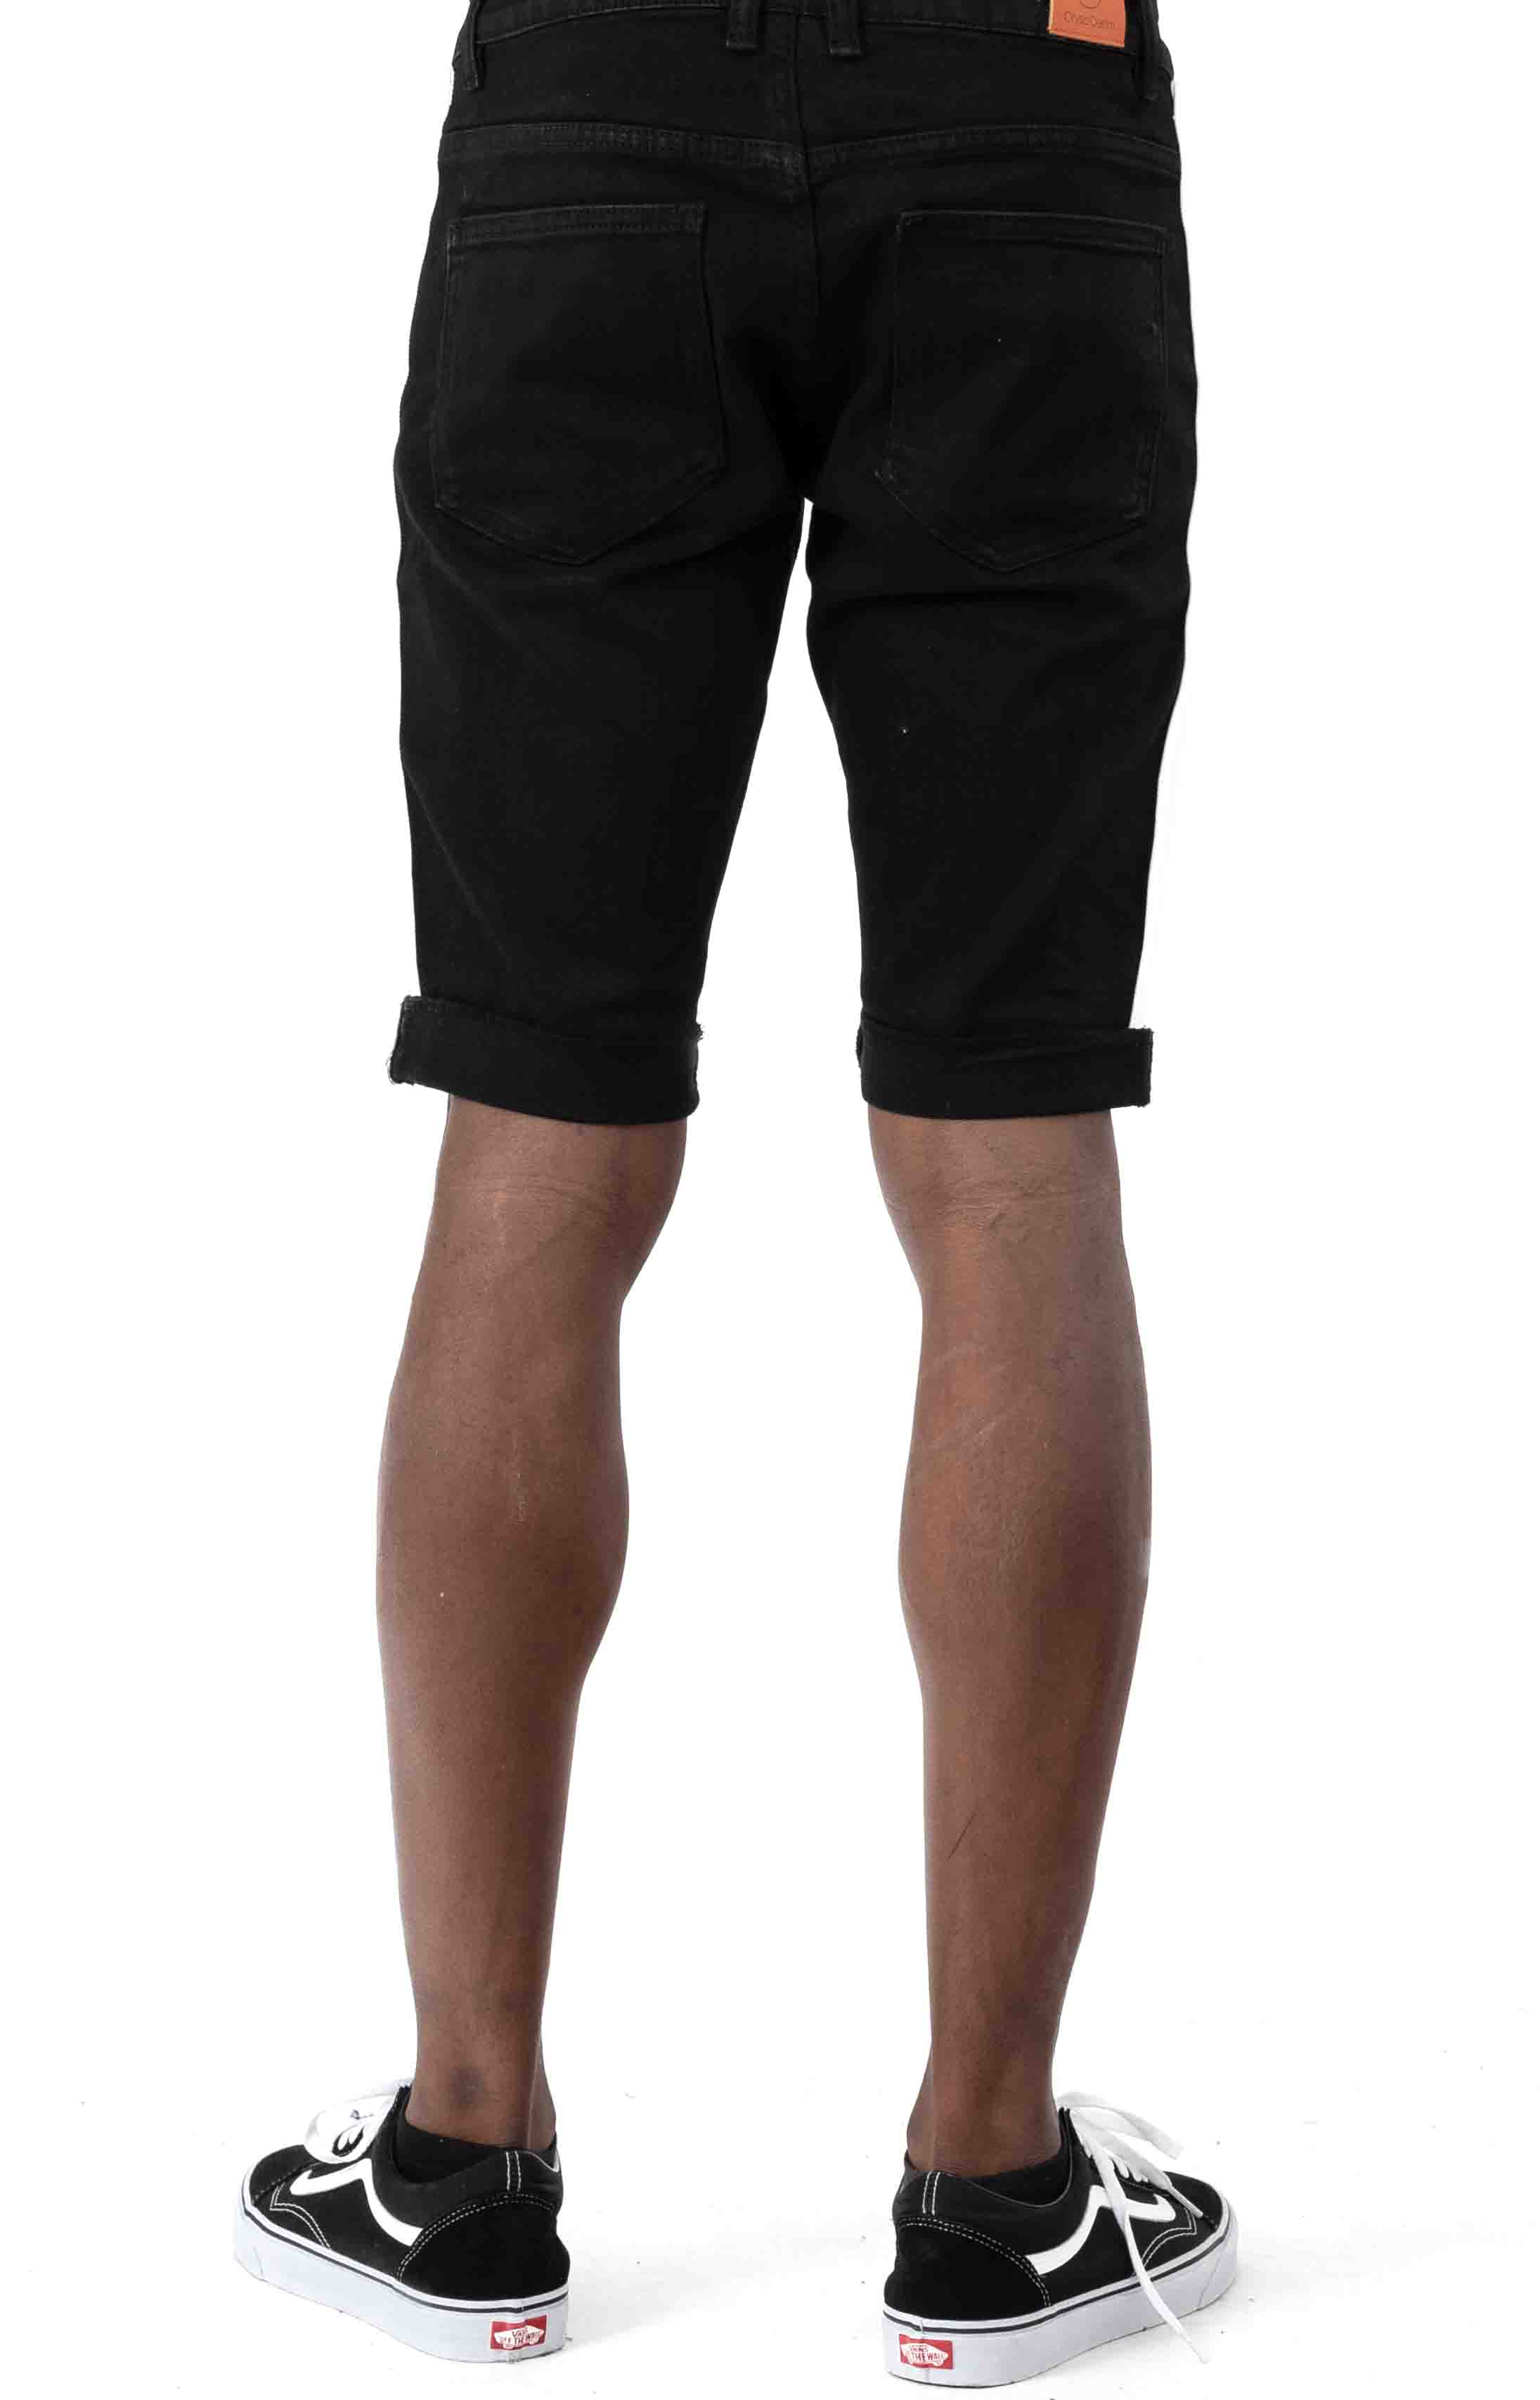 (CRYSPSP220-147) Philips Denim Shorts - Black Stripe  3